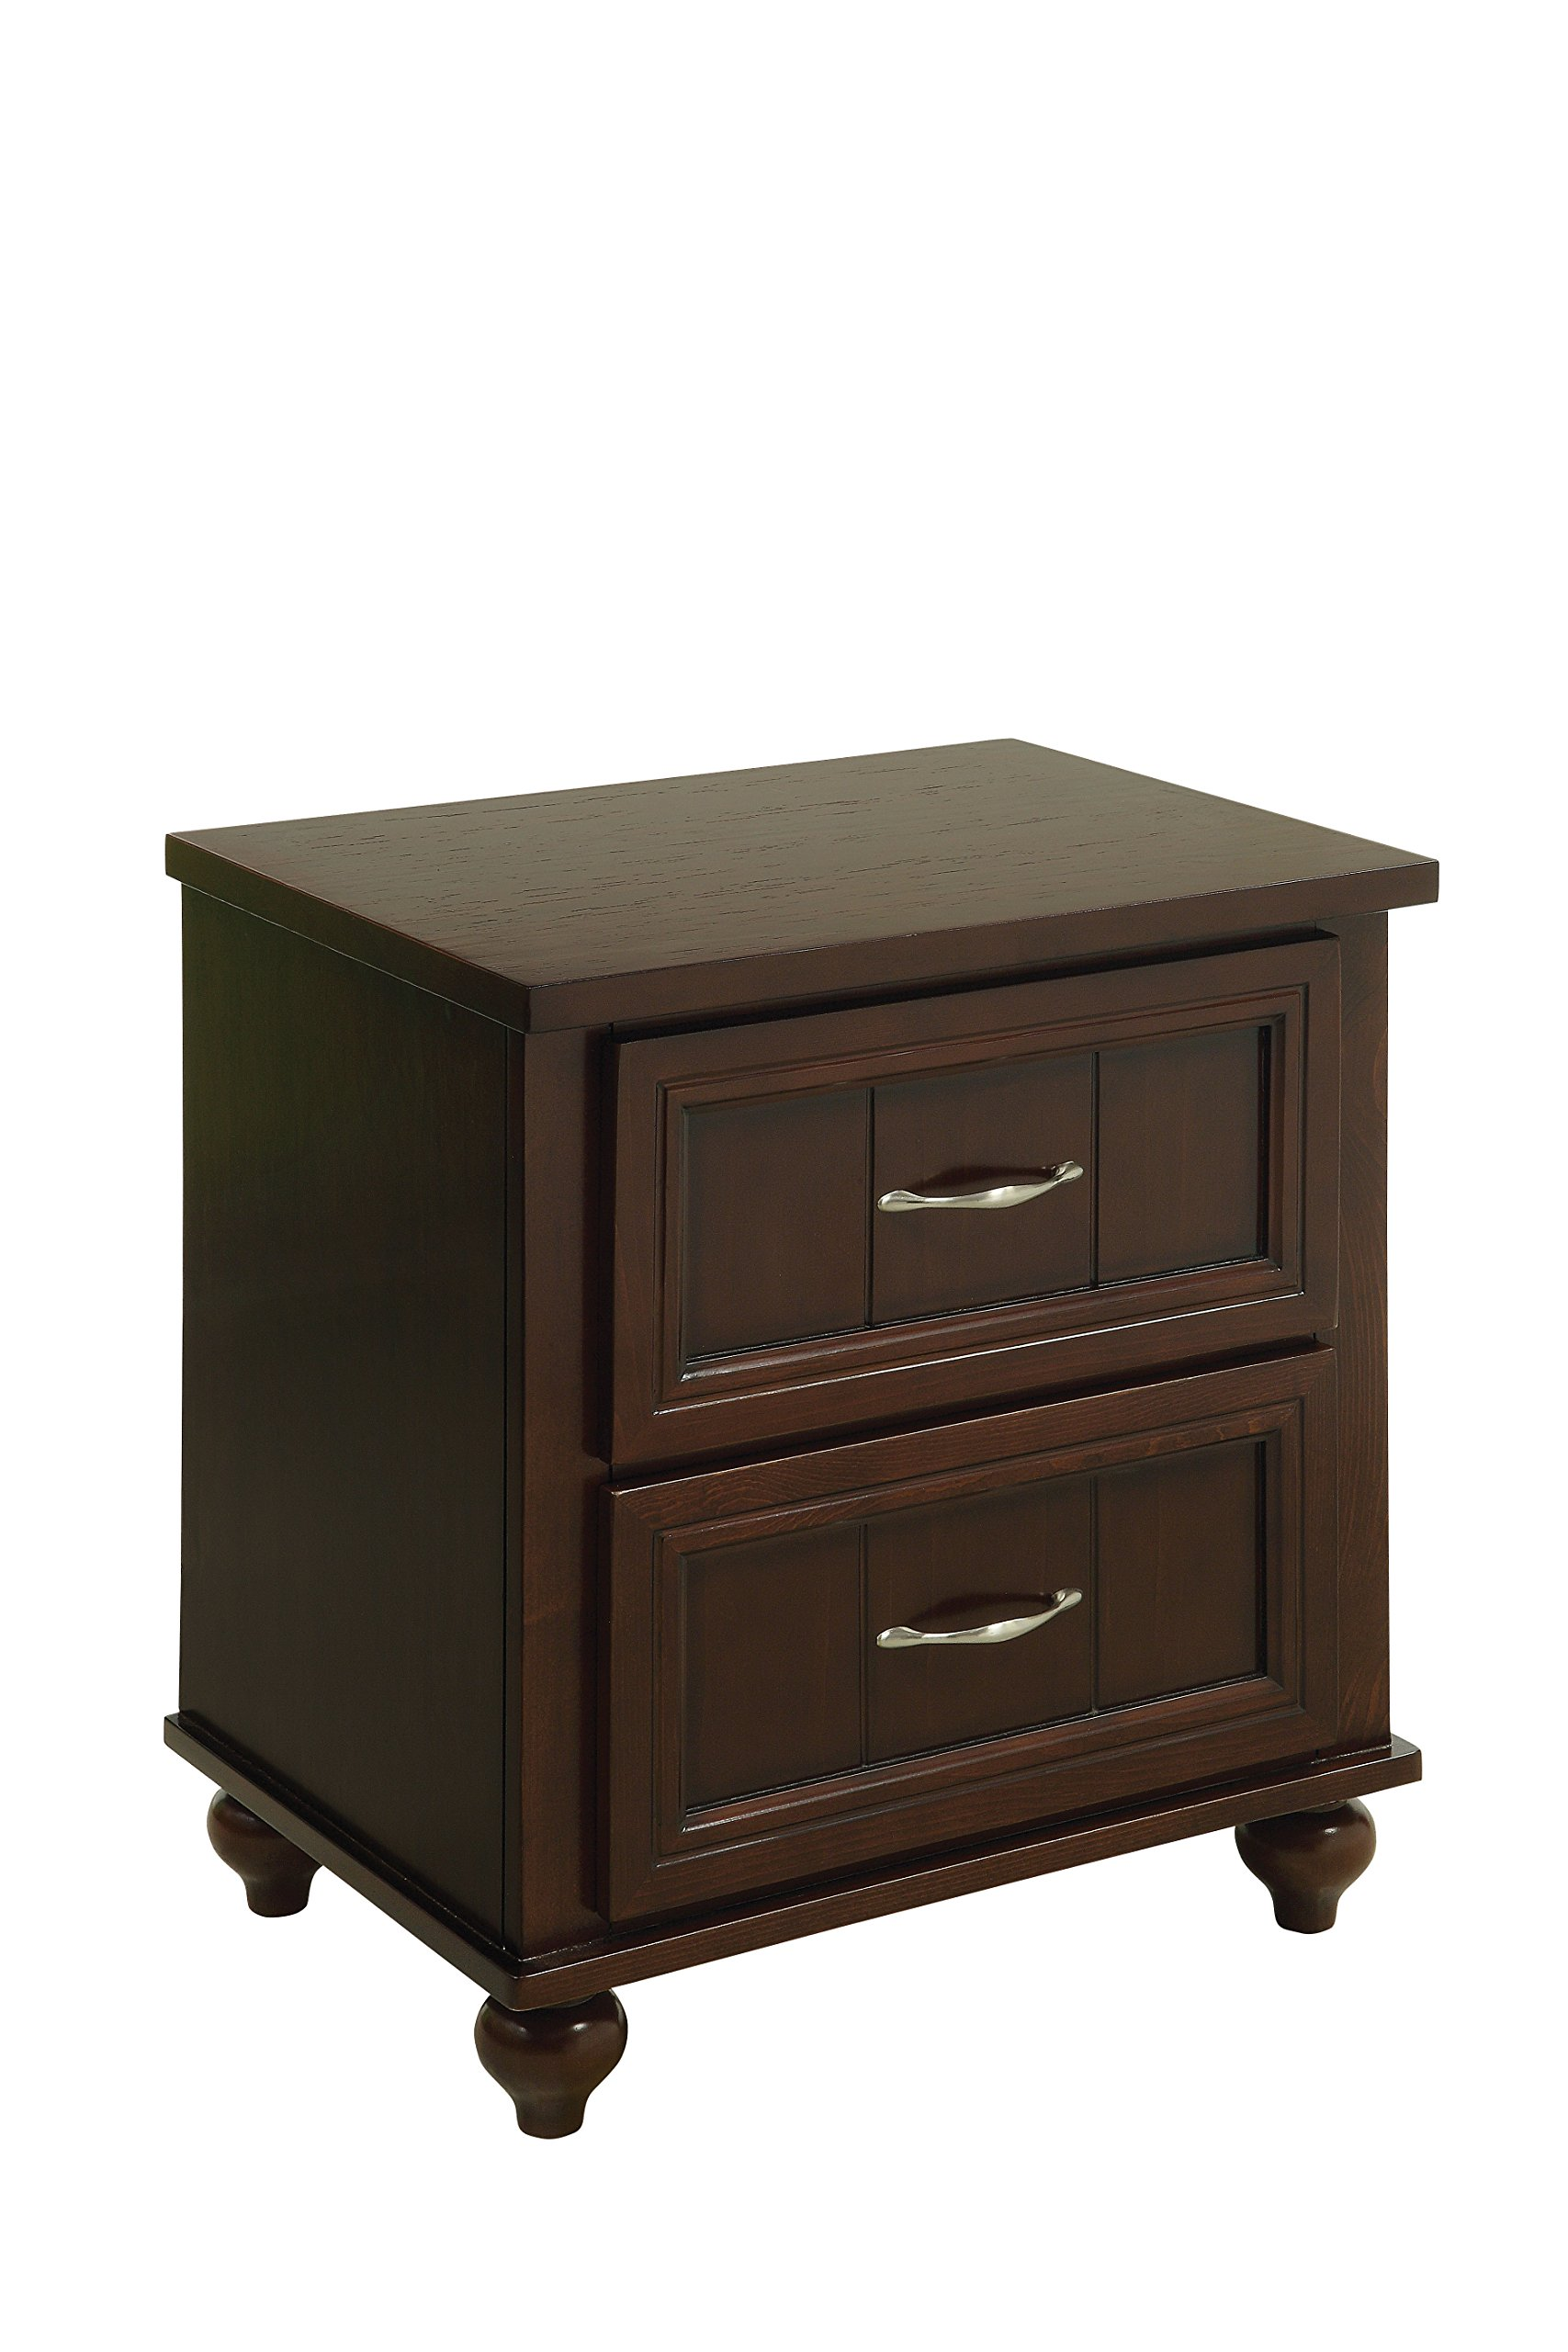 HOMES: Inside + Out Felix Transitional 2-Drawer Nightstand, Espresso